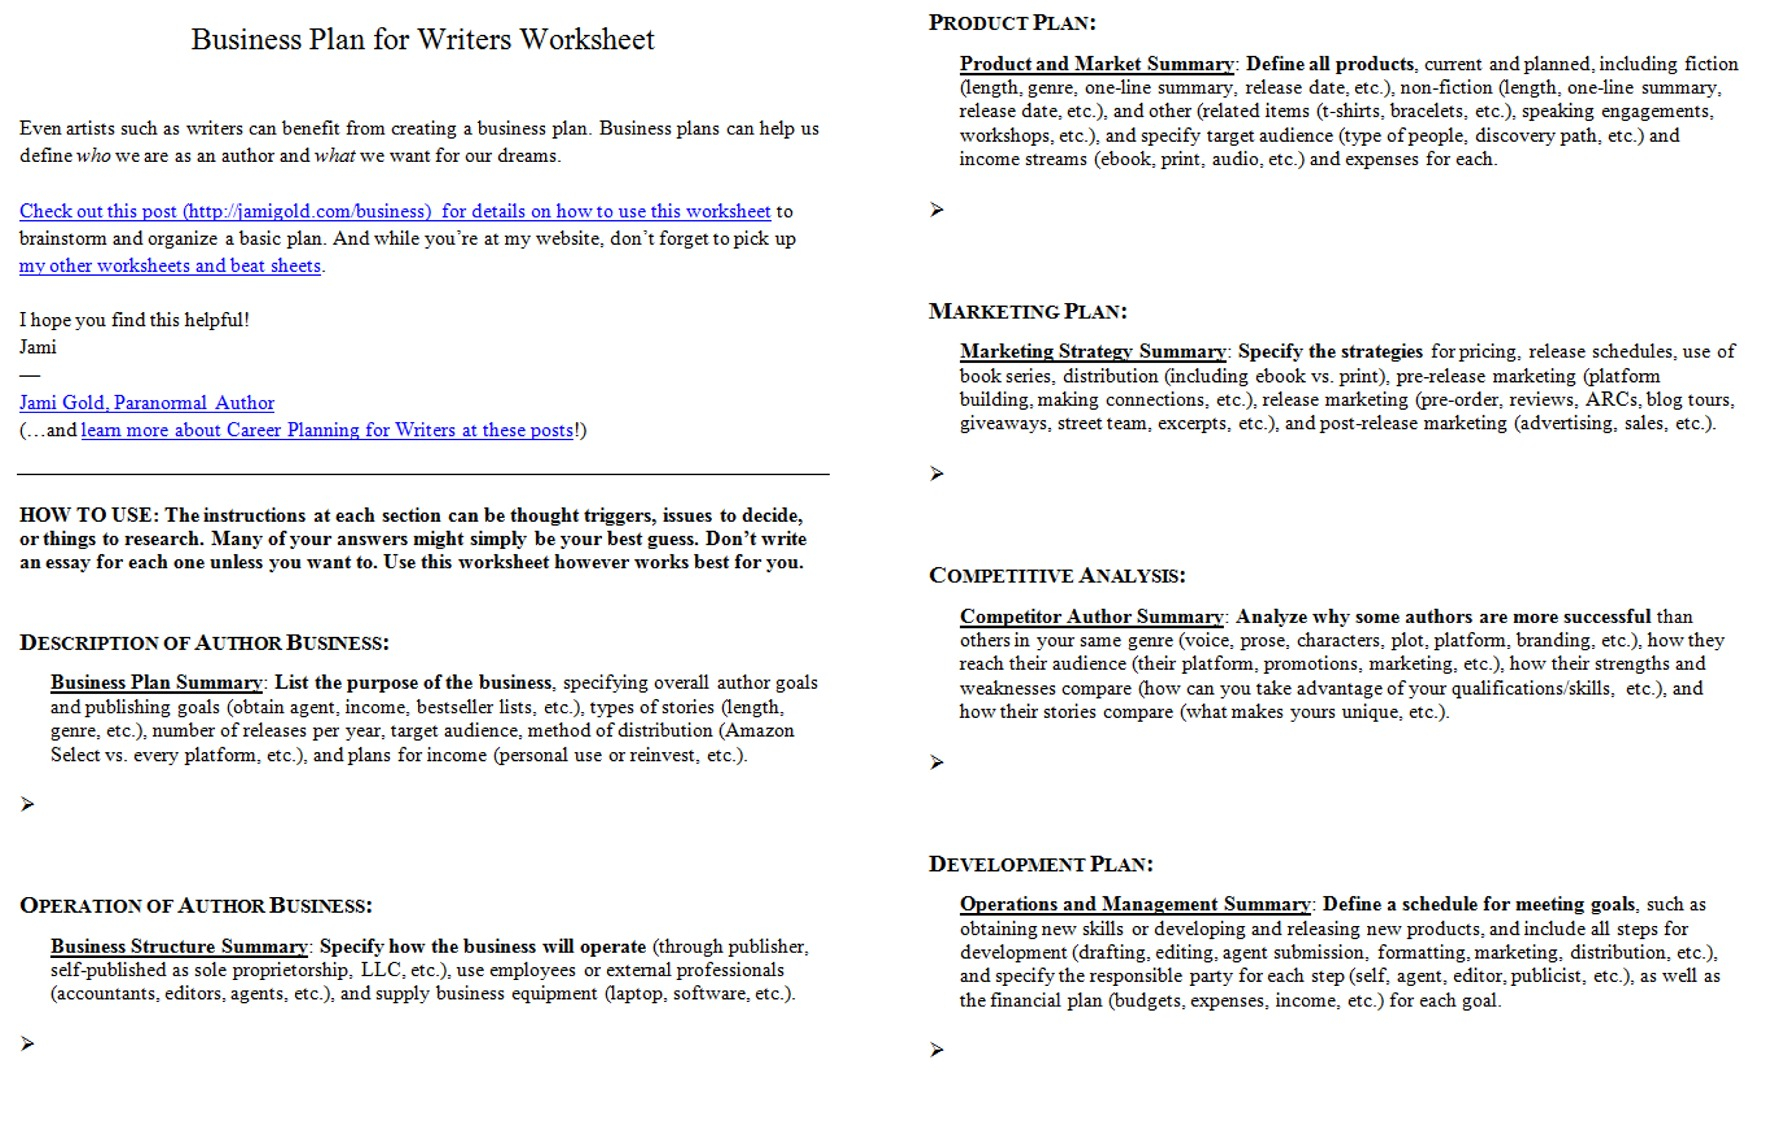 Weirdmailus  Fascinating Worksheets For Writers  Jami Gold Paranormal Author With Foxy Screen Shot Of Both Pages Of The Business Plan For Writers Worksheet With Charming Setting And Mood Worksheets Also Worksheet Trigonometric Ratios Sohcahtoa In Addition Recognizing Cause And Effect Worksheets And Snowball Debt Plan Worksheet As Well As Rain Rain Go Away Worksheet Additionally Properties Of Water Worksheet High School From Jamigoldcom With Weirdmailus  Foxy Worksheets For Writers  Jami Gold Paranormal Author With Charming Screen Shot Of Both Pages Of The Business Plan For Writers Worksheet And Fascinating Setting And Mood Worksheets Also Worksheet Trigonometric Ratios Sohcahtoa In Addition Recognizing Cause And Effect Worksheets From Jamigoldcom